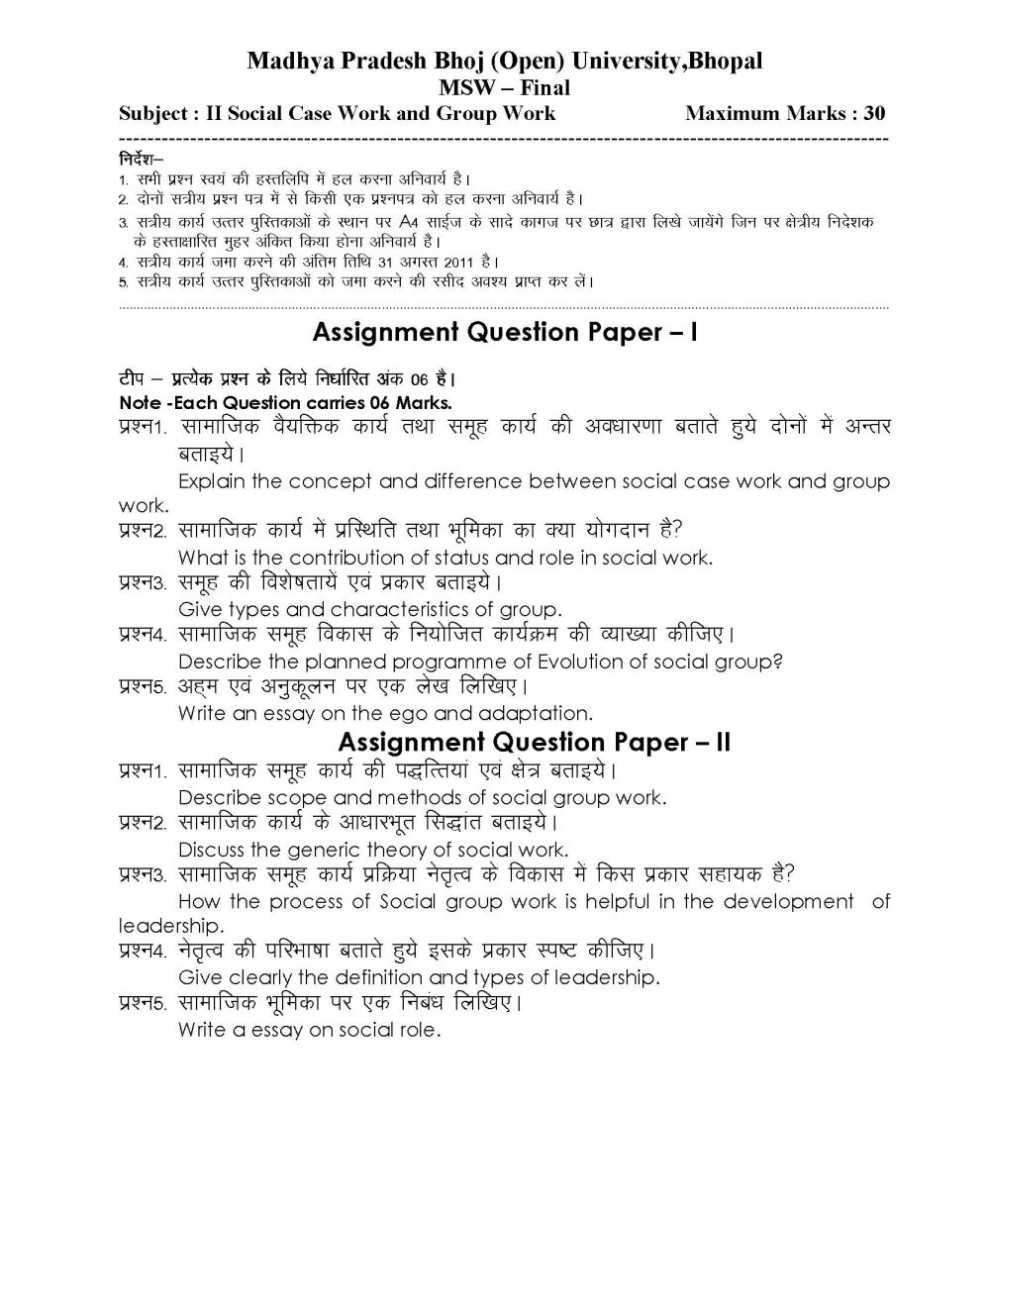 012 Bhoj University Bhopal Msw Definition Essays Surprising Essay Examples Topics Family Pdf Full